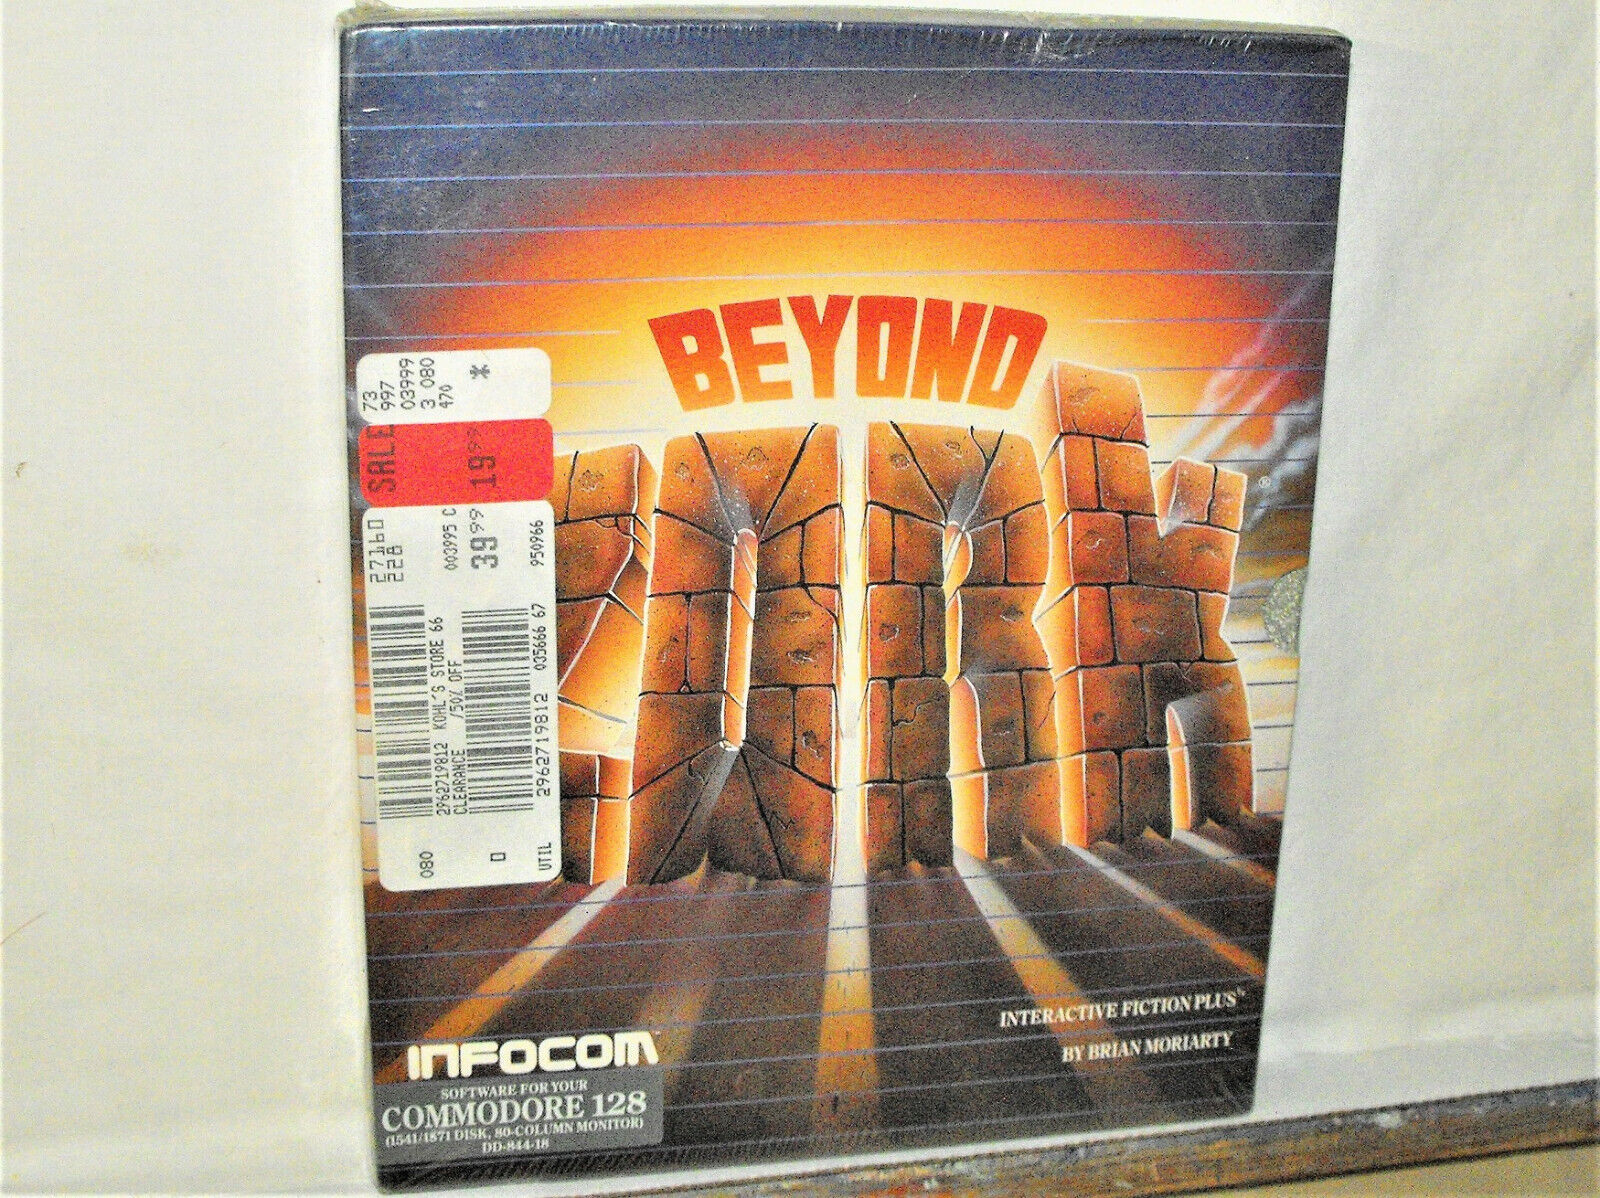 Computer Games - Commodore 64/128 PC Computer Game BEYOND ZORK Infocom Software Disk Sealed Box